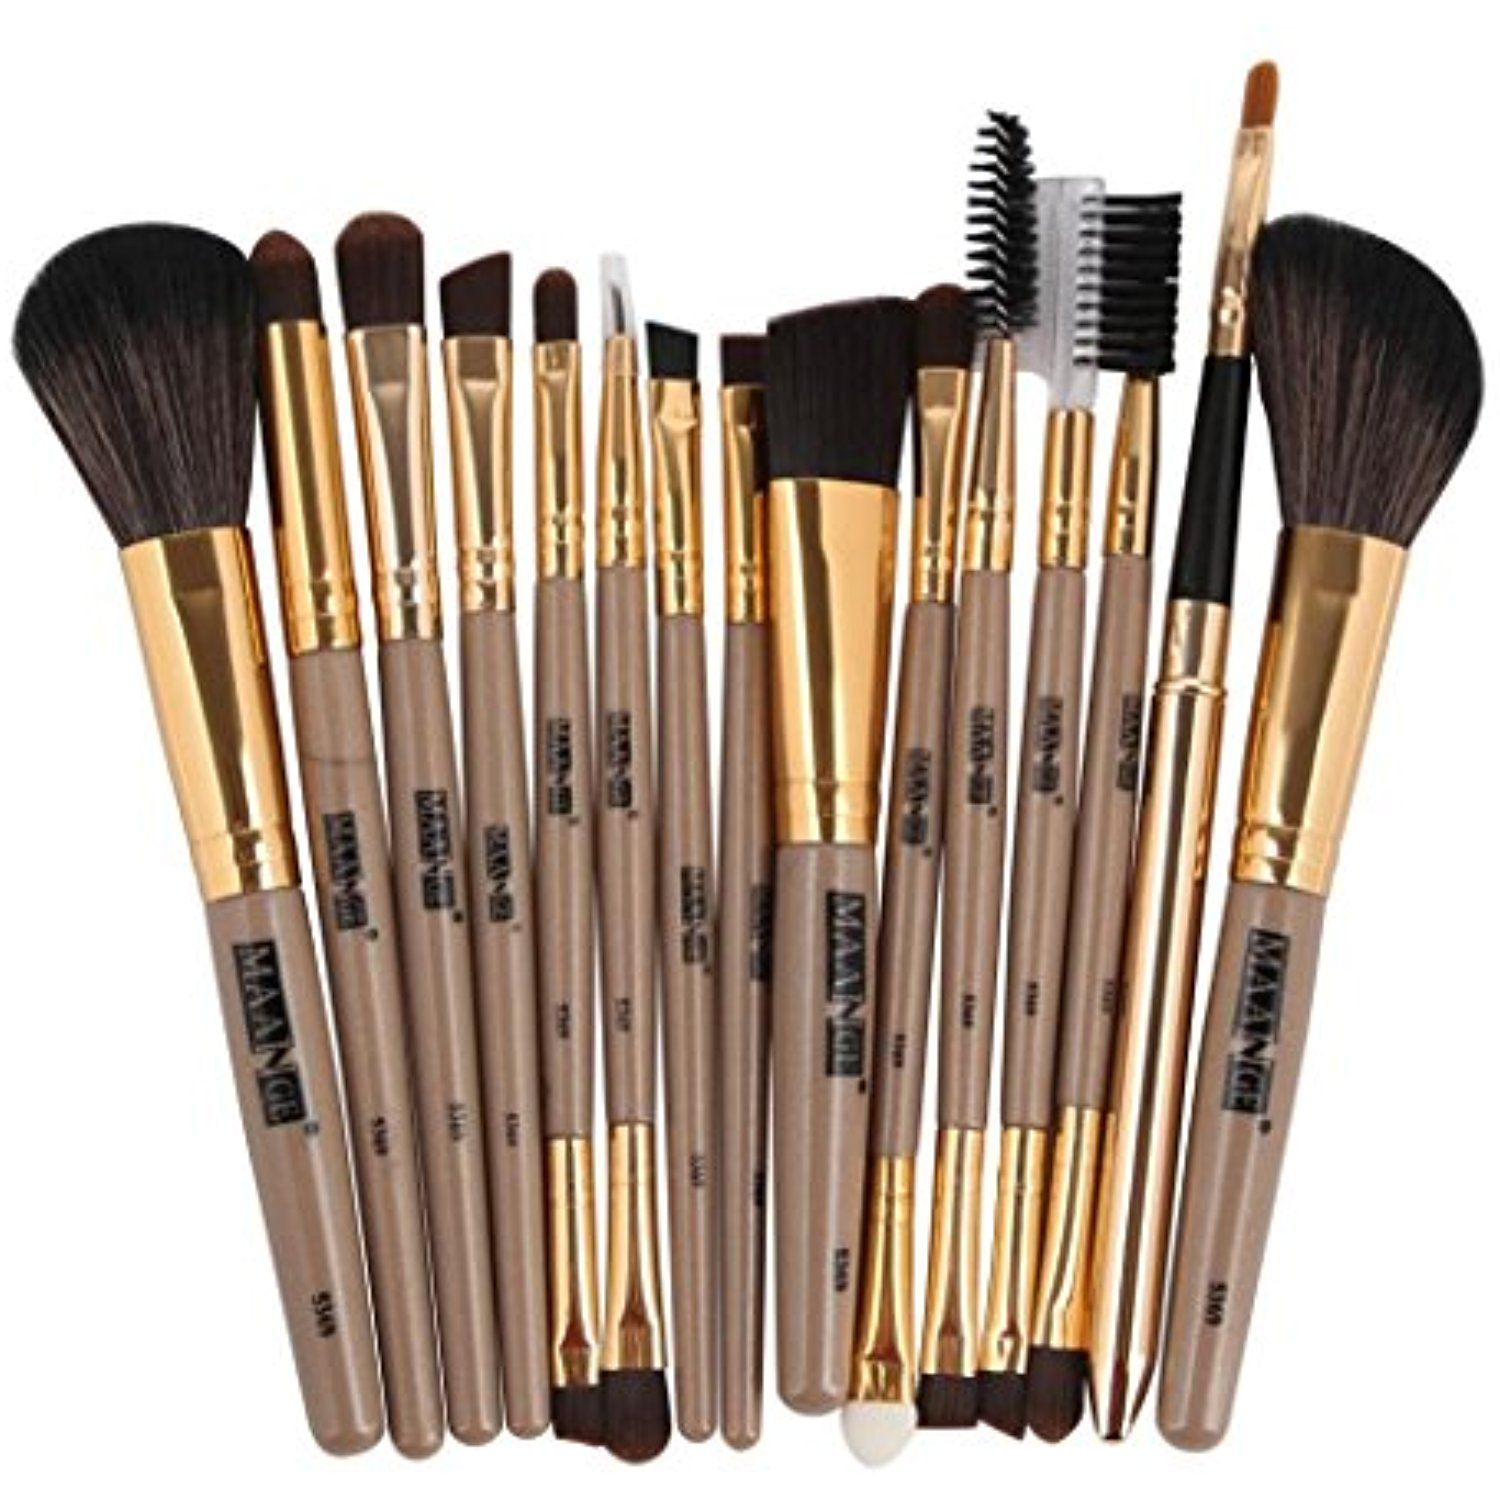 15pcs Makeup Brushes Set MAANGE Foundation